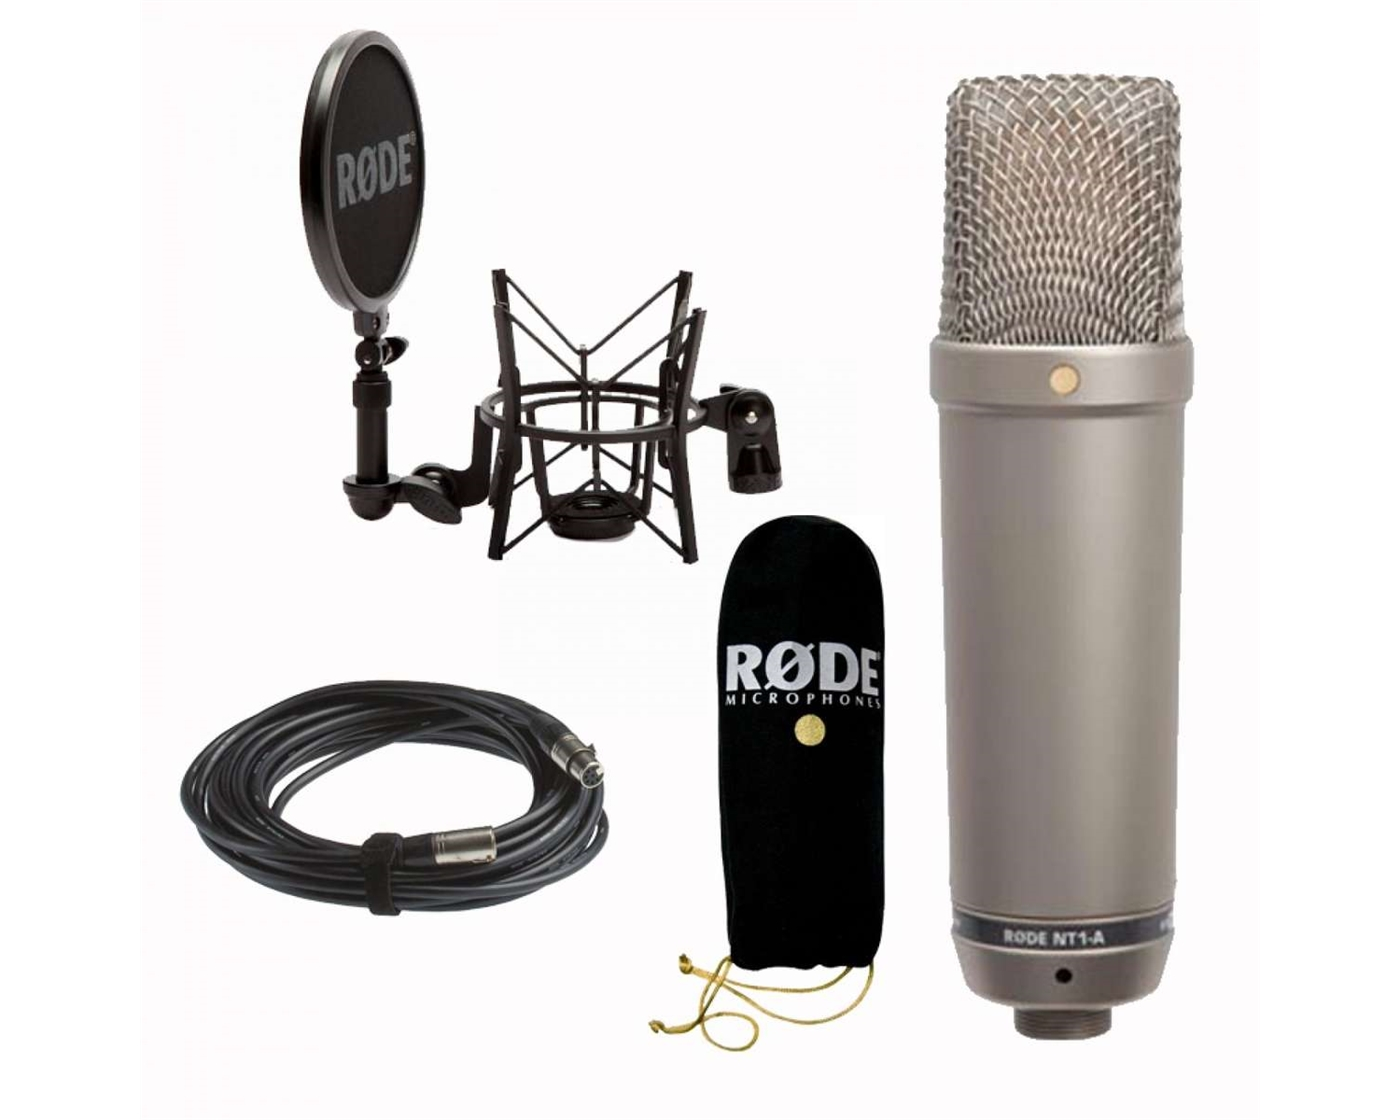 P230013 Rode 230013 Røde NT1-A Studio Kit